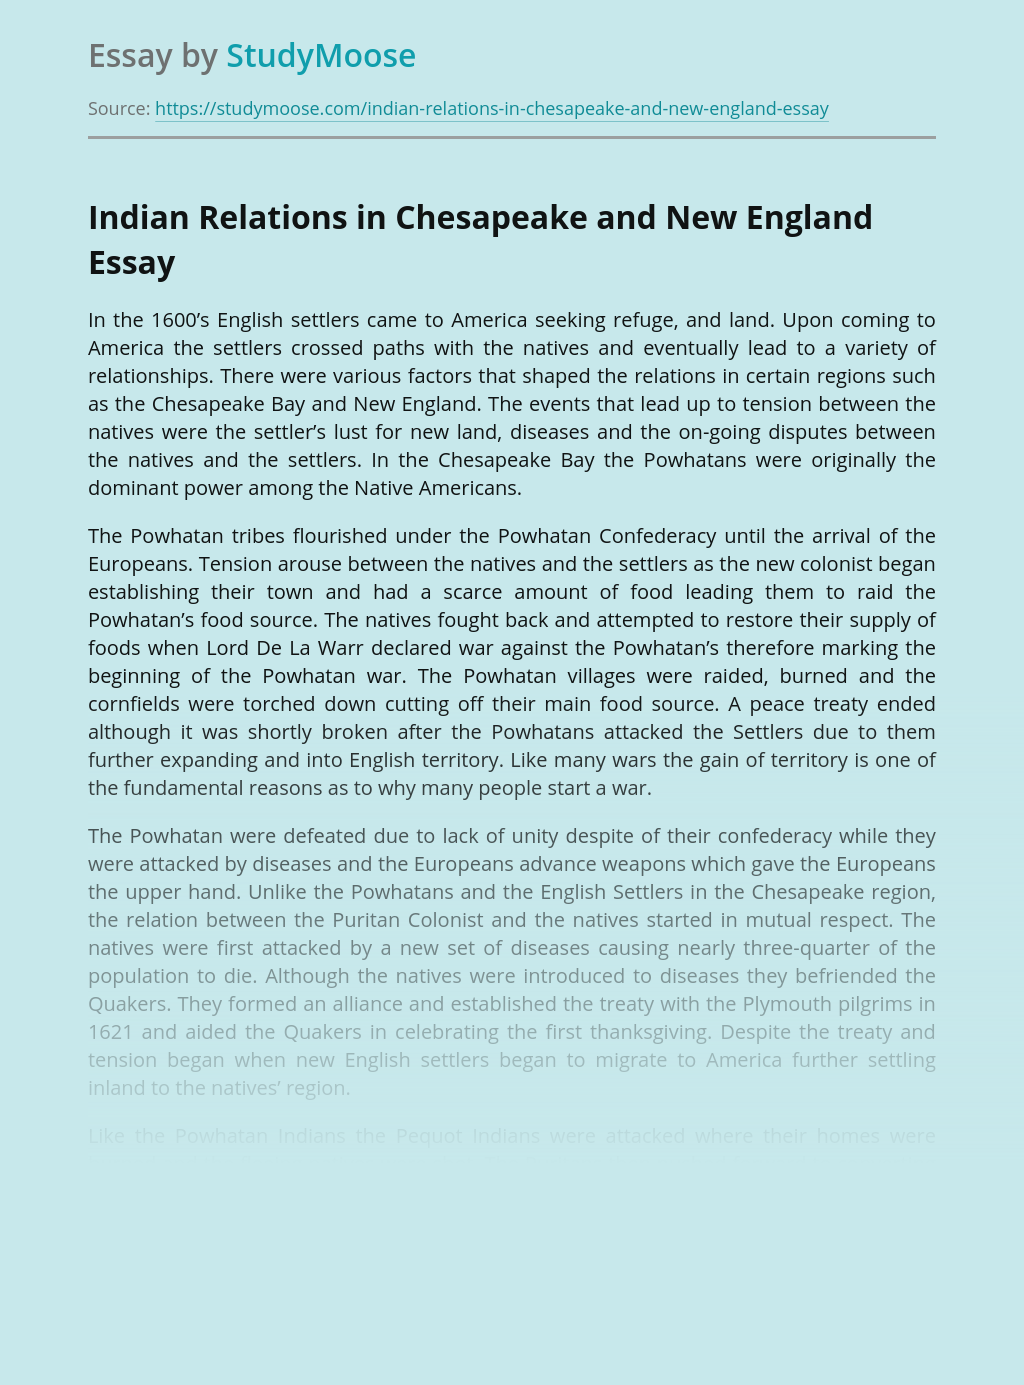 Indian Relations in Chesapeake and New England